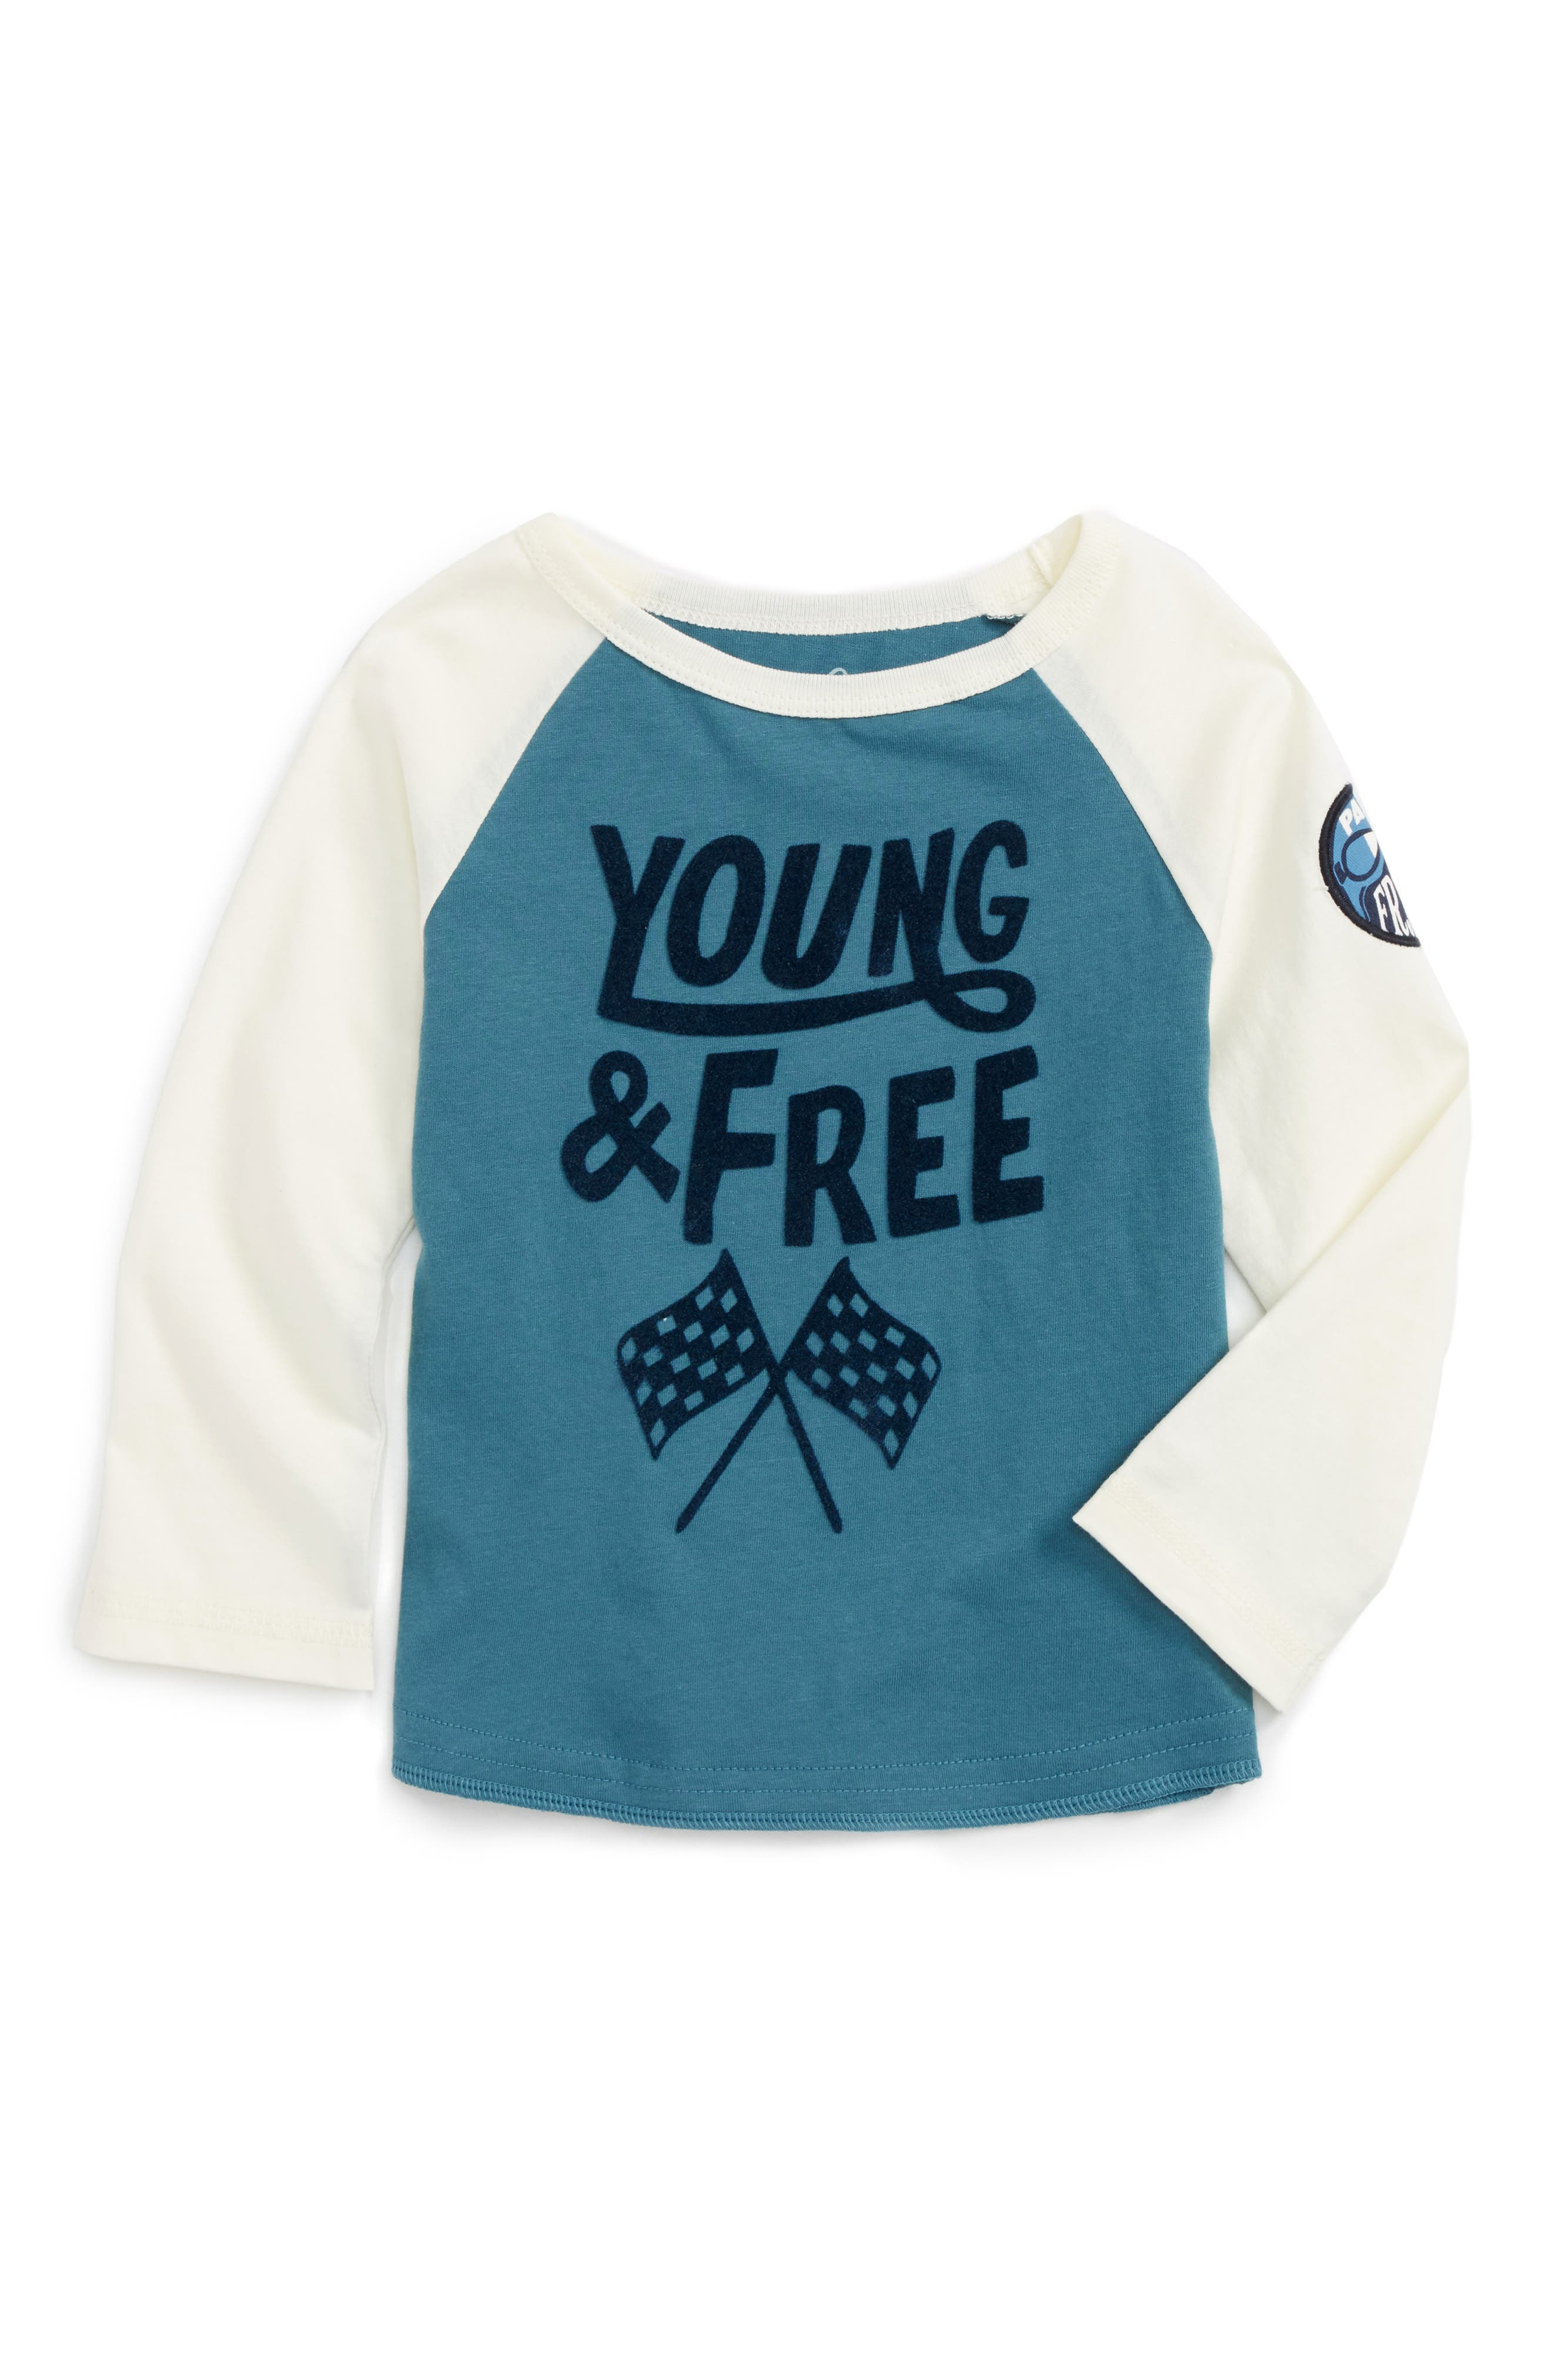 Alternate Image 1 Selected - Peek Young & Free T-Shirt (Baby Boys)